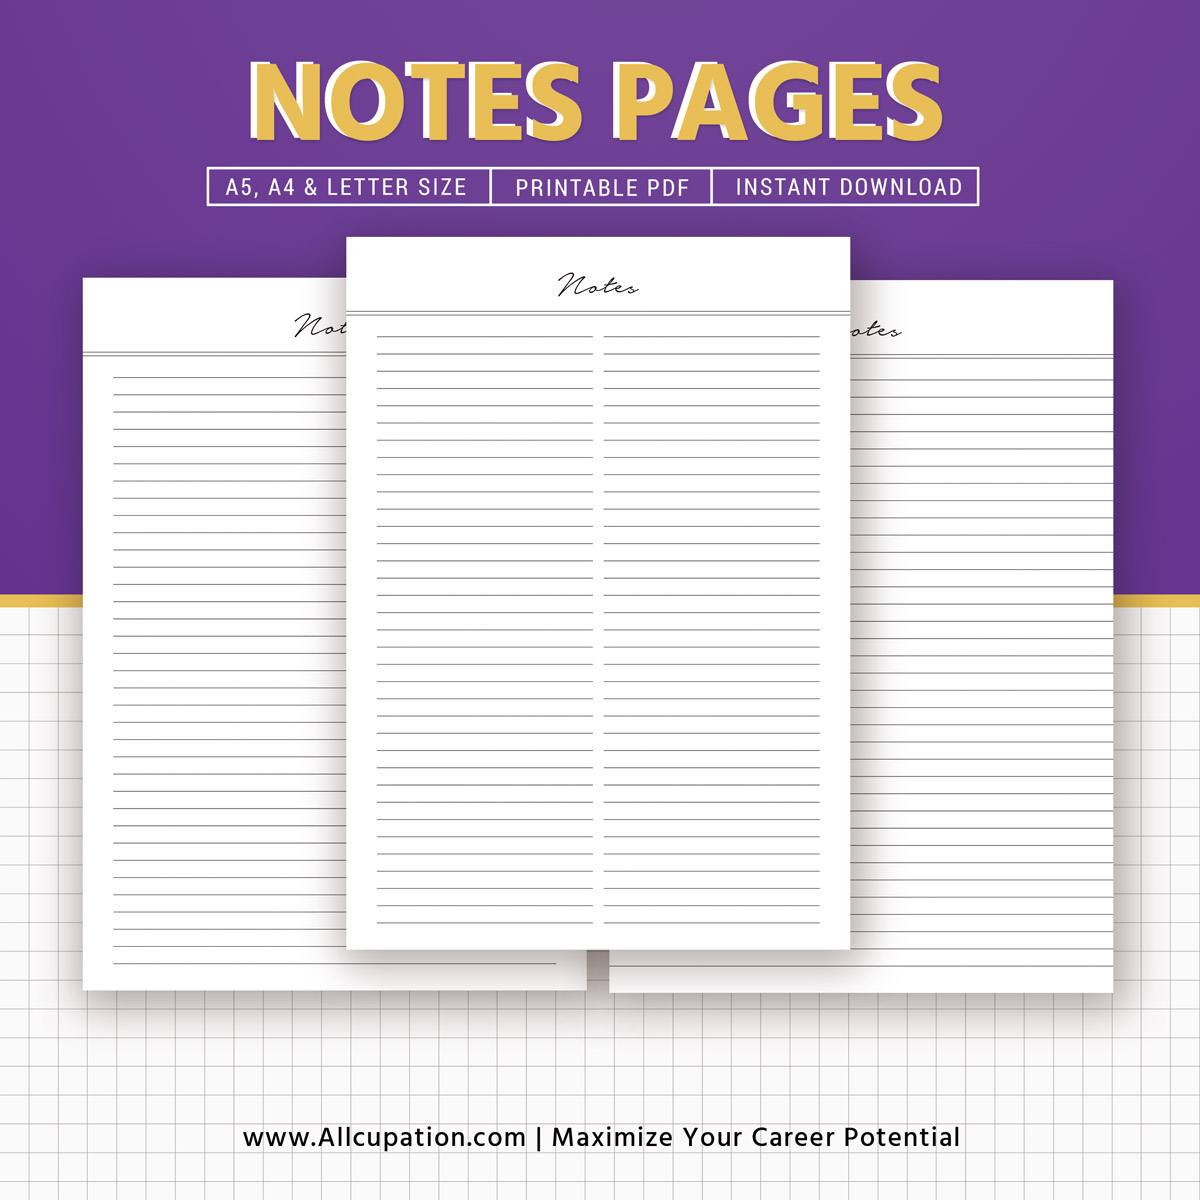 Notes Printable Lined Notes Inserts Notepad Notebook Planner Design Planner Pages A4 Letter Filofax A5 Kikki K Large Instant Download